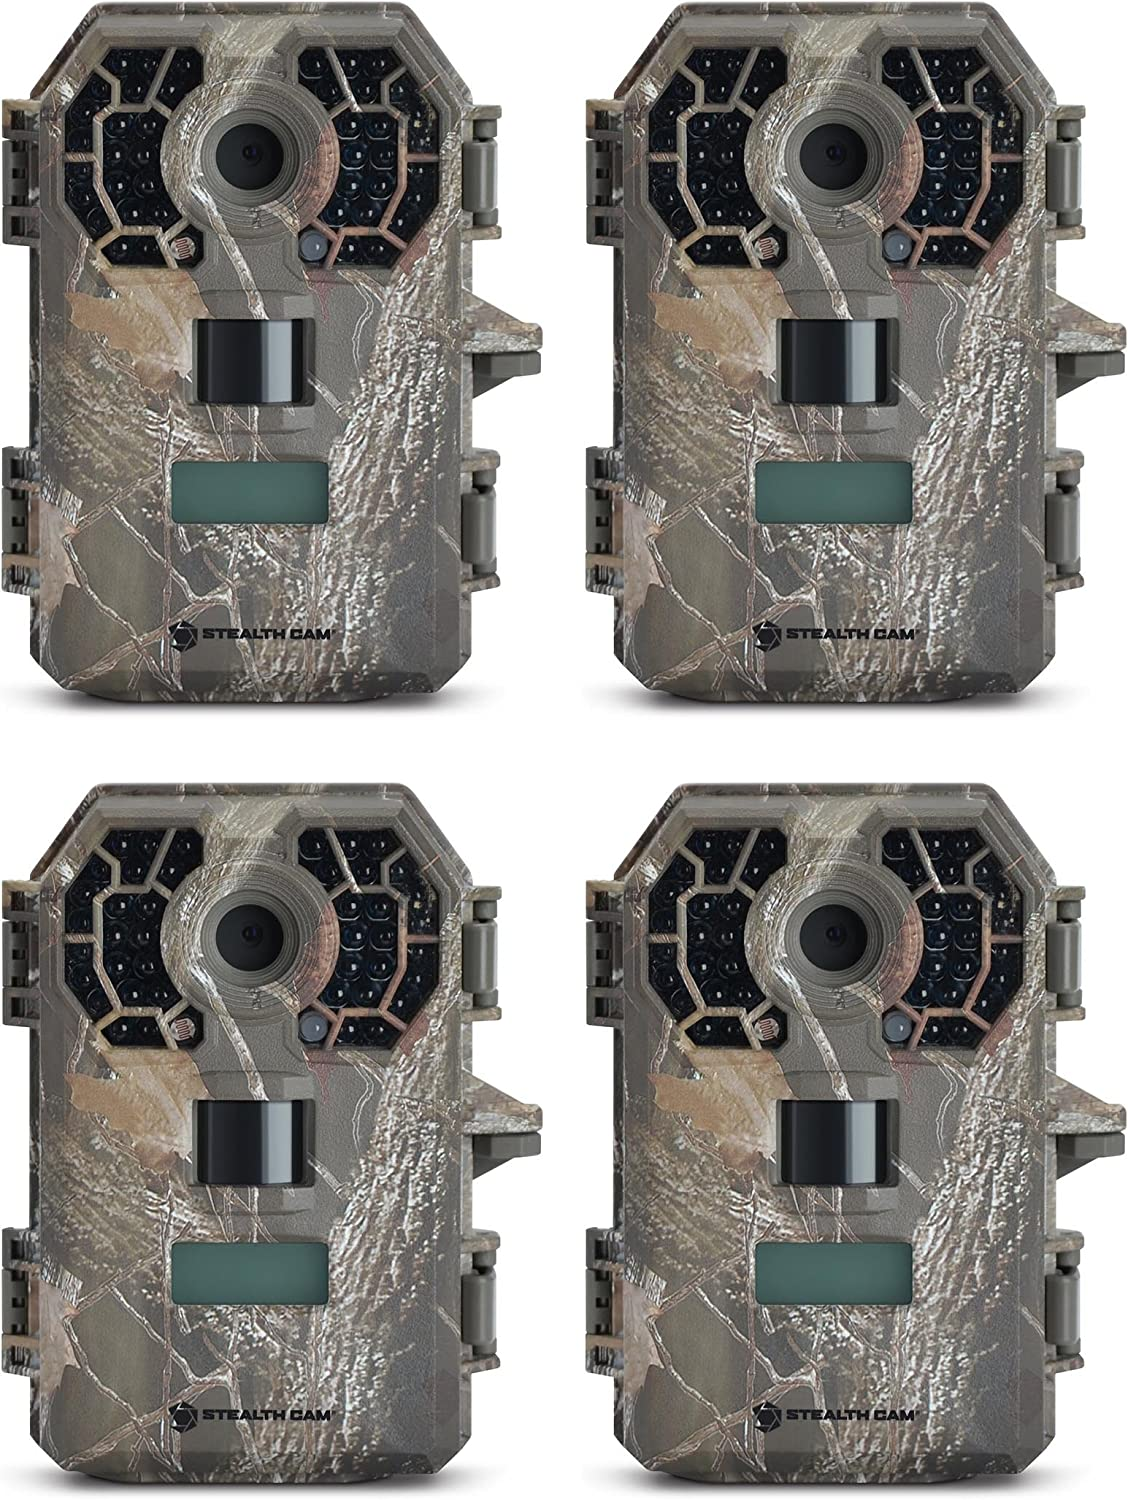 Stealth Cam G42NG 10MP HD Video IR Game Trail Camera 4 Pack